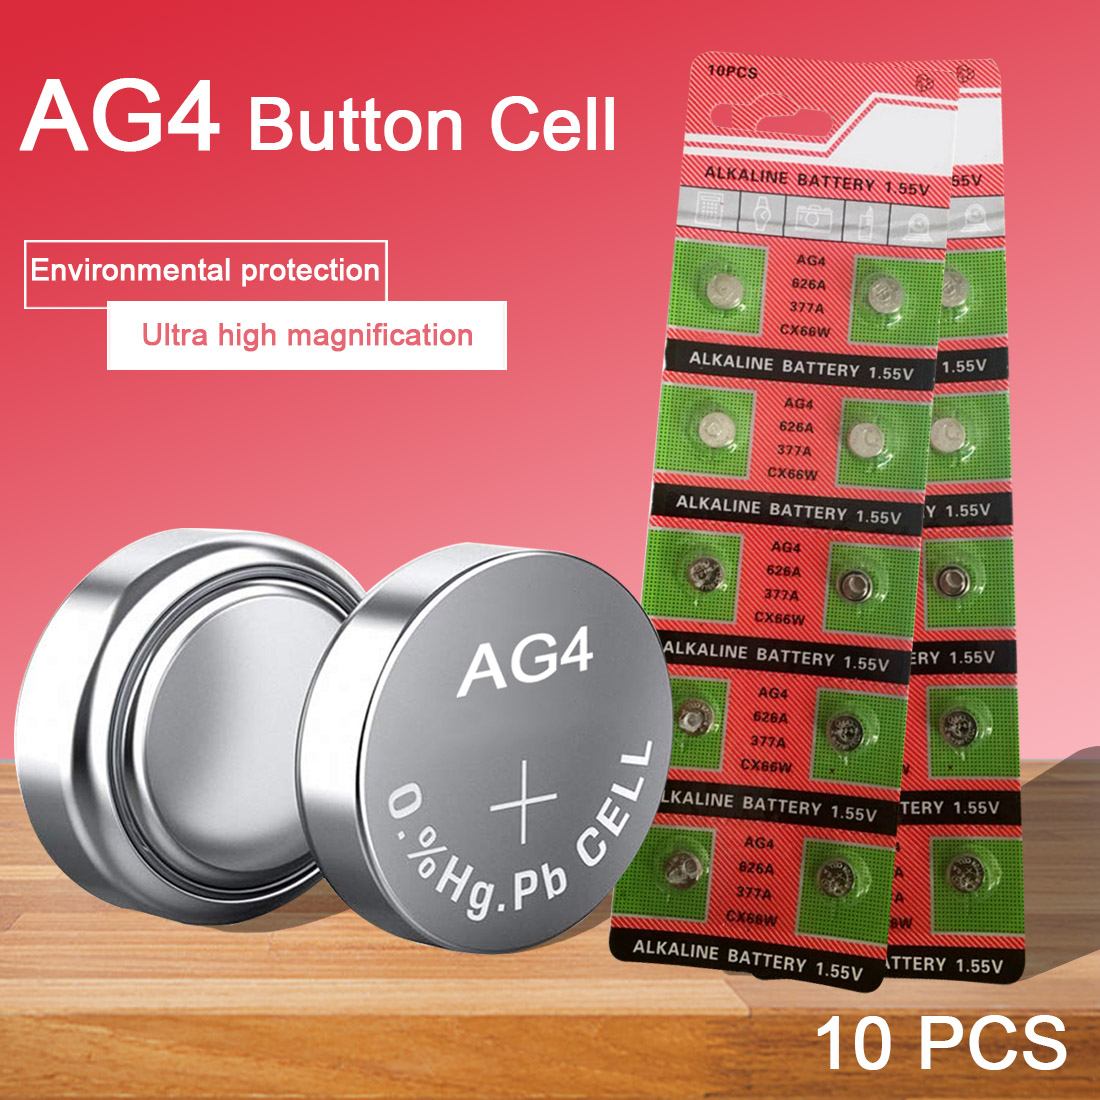 10PCS 1.55V AG4 Watch Battery 626A 377A CX66W Coin Cell Alkaline Batteries for Toy Calculator Laser Pointer Clock Watch Cameras